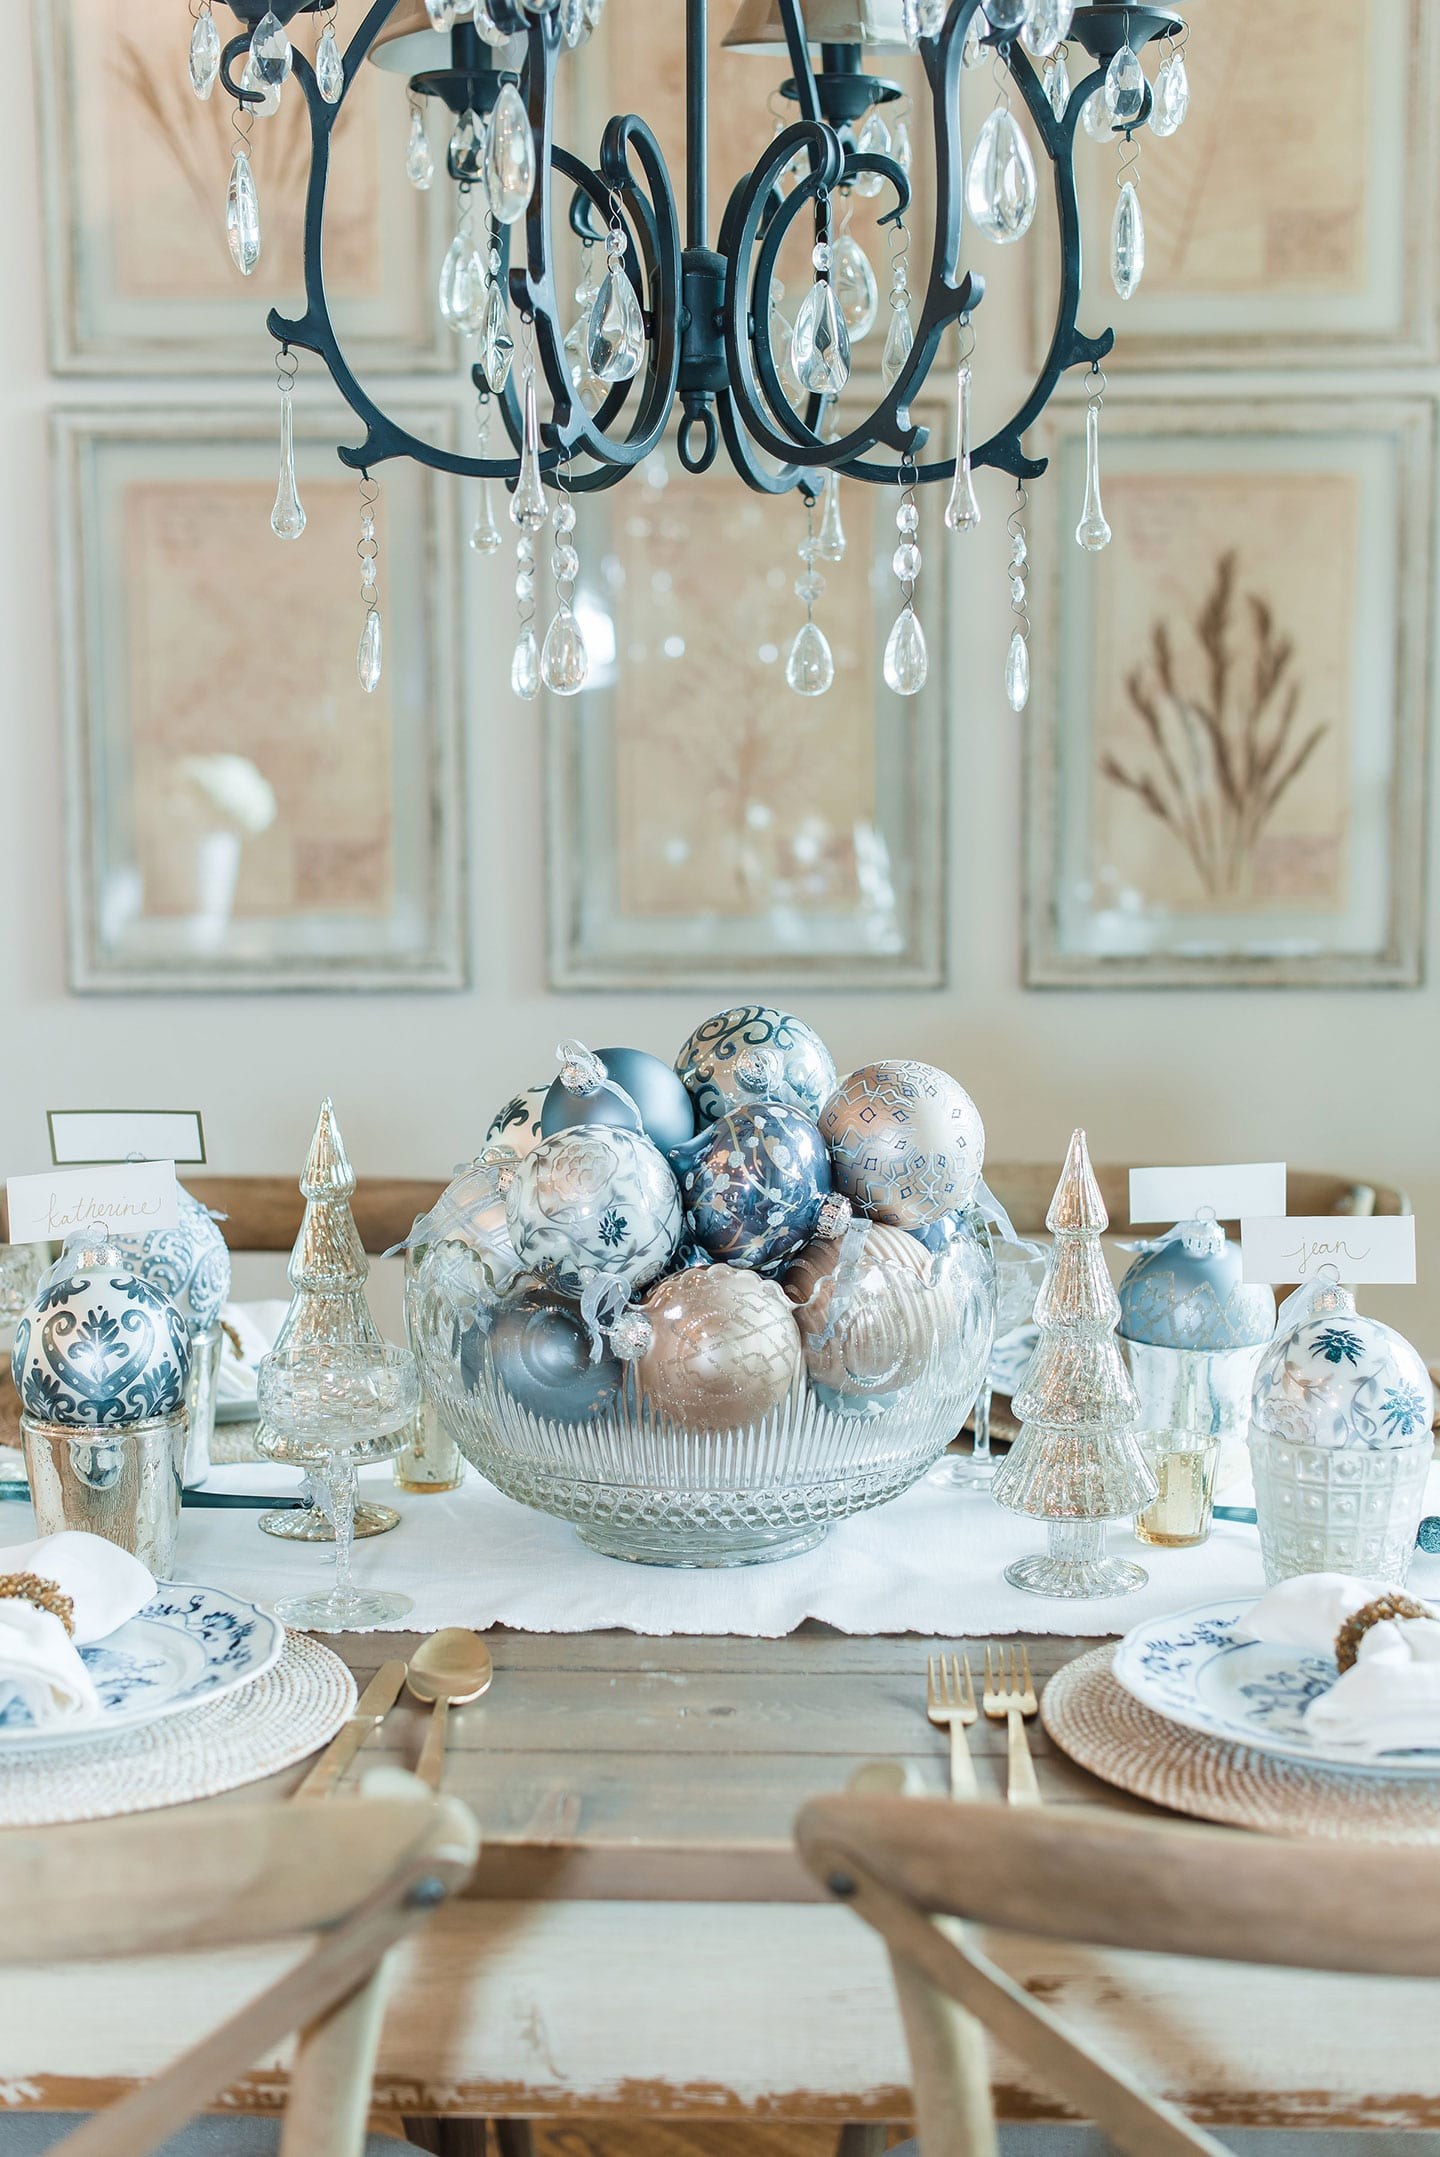 Unique Ways to Decorate With Ornaments This Holiday Season!